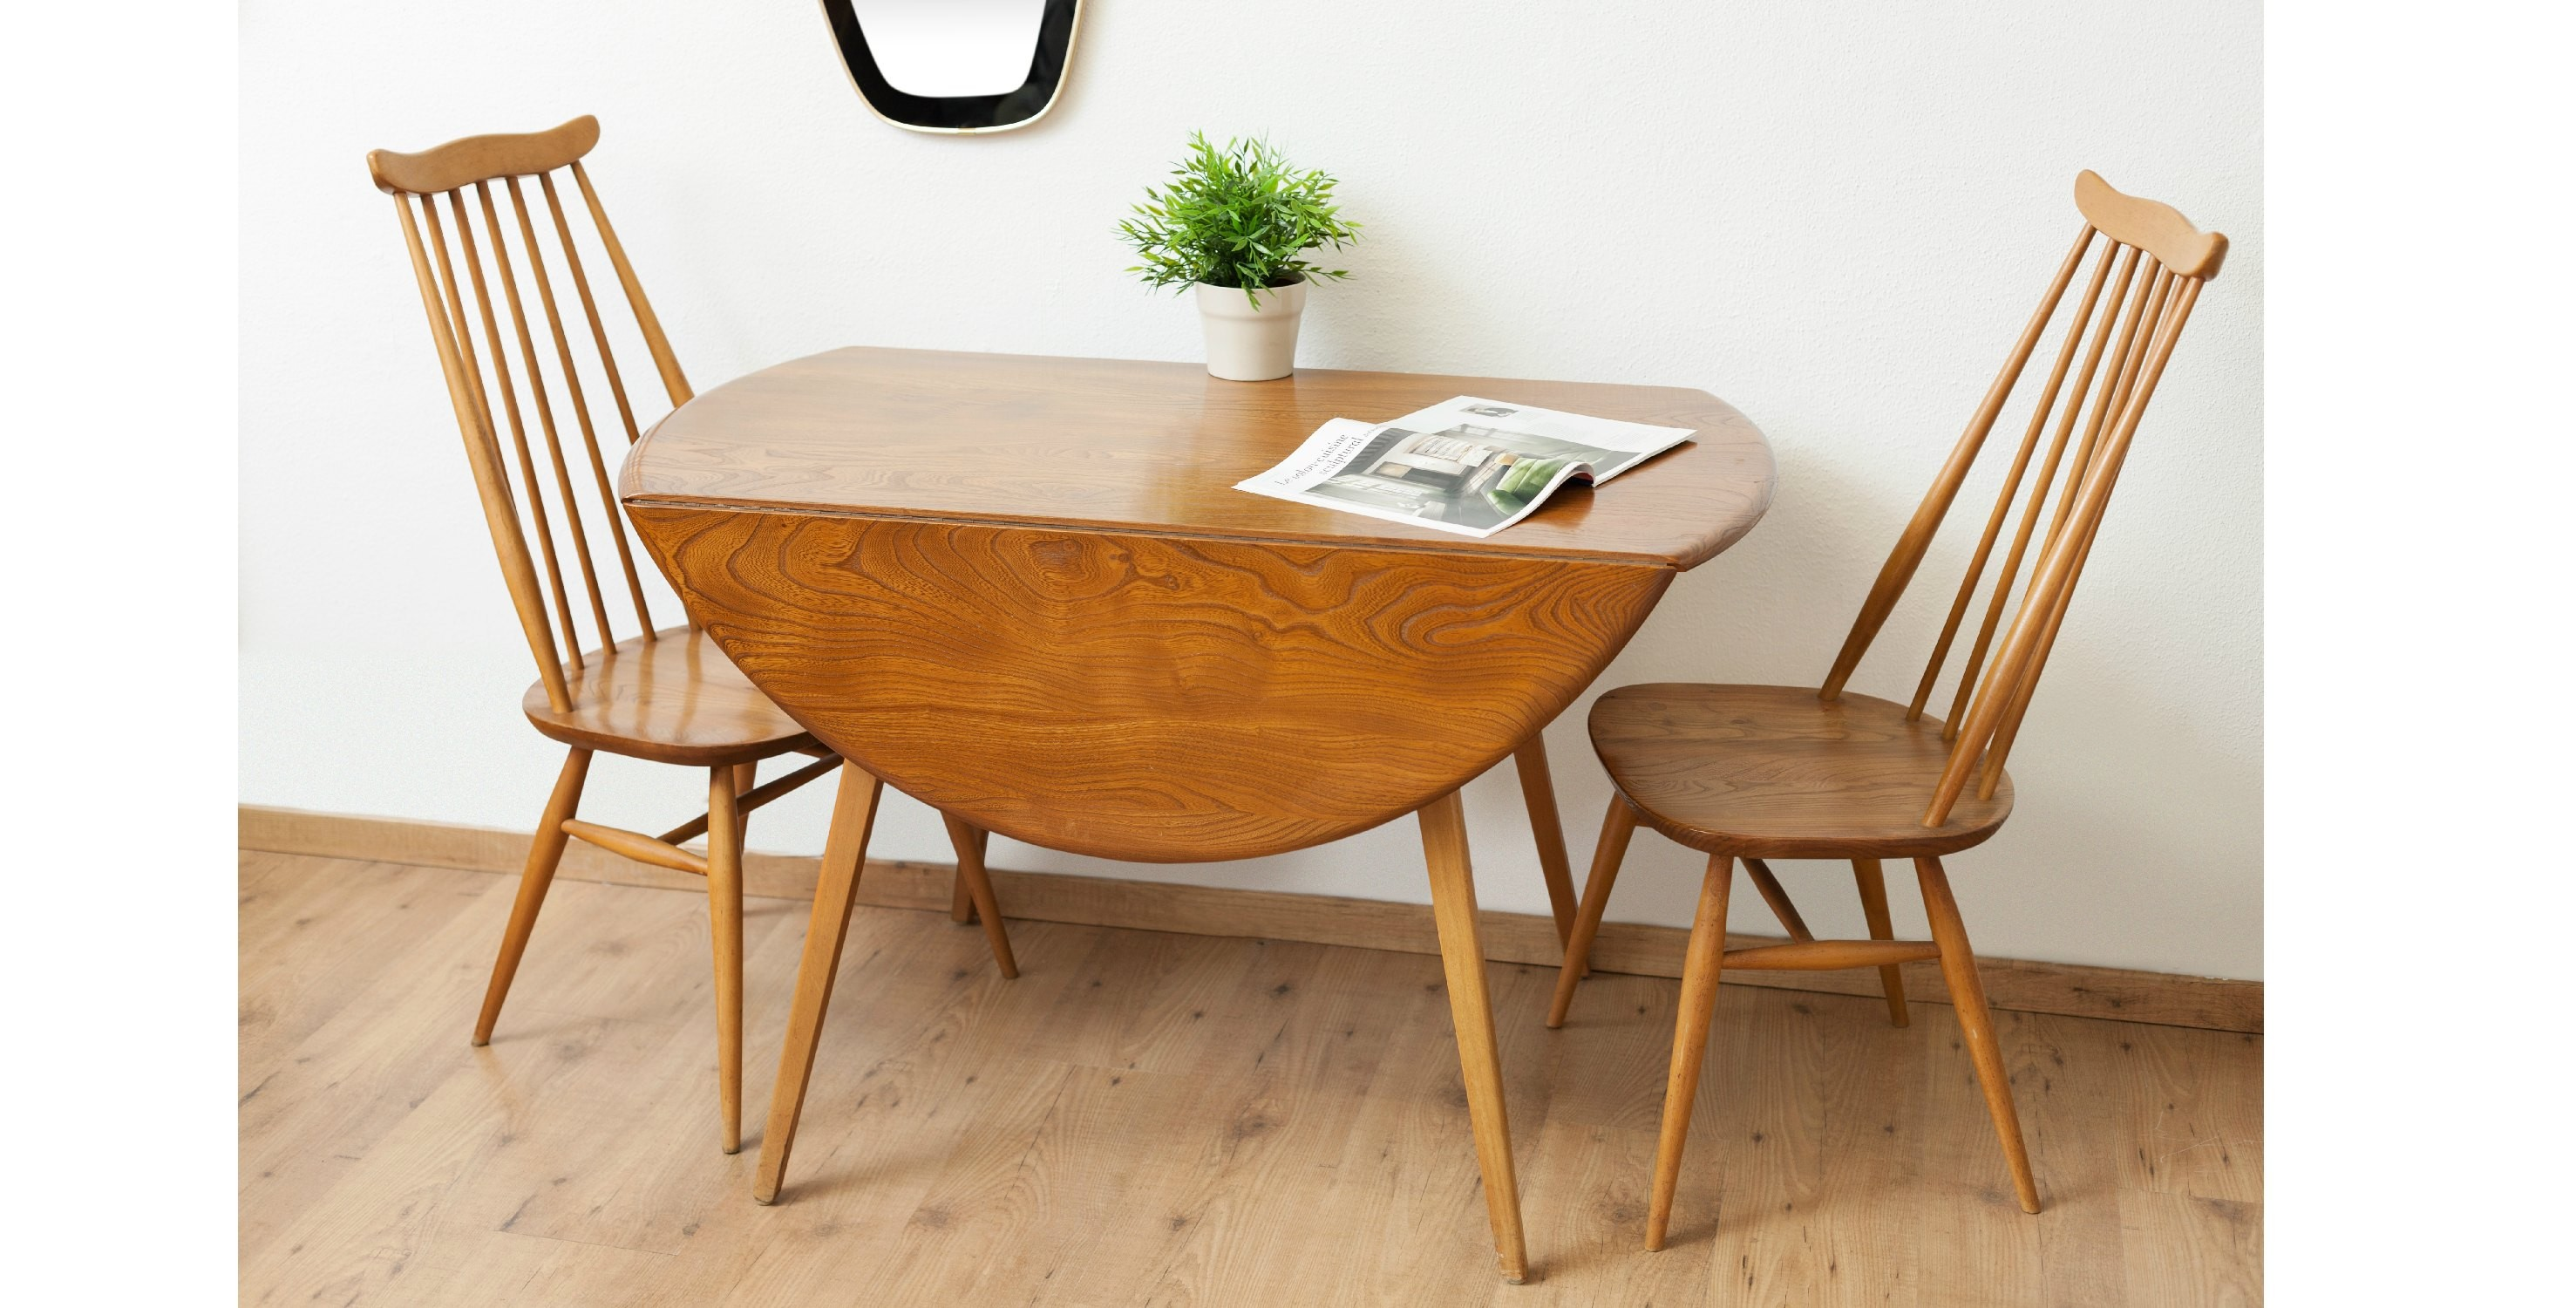 Table manger pliante ercol 1960 vendue room 30 - Table manger pliante ...